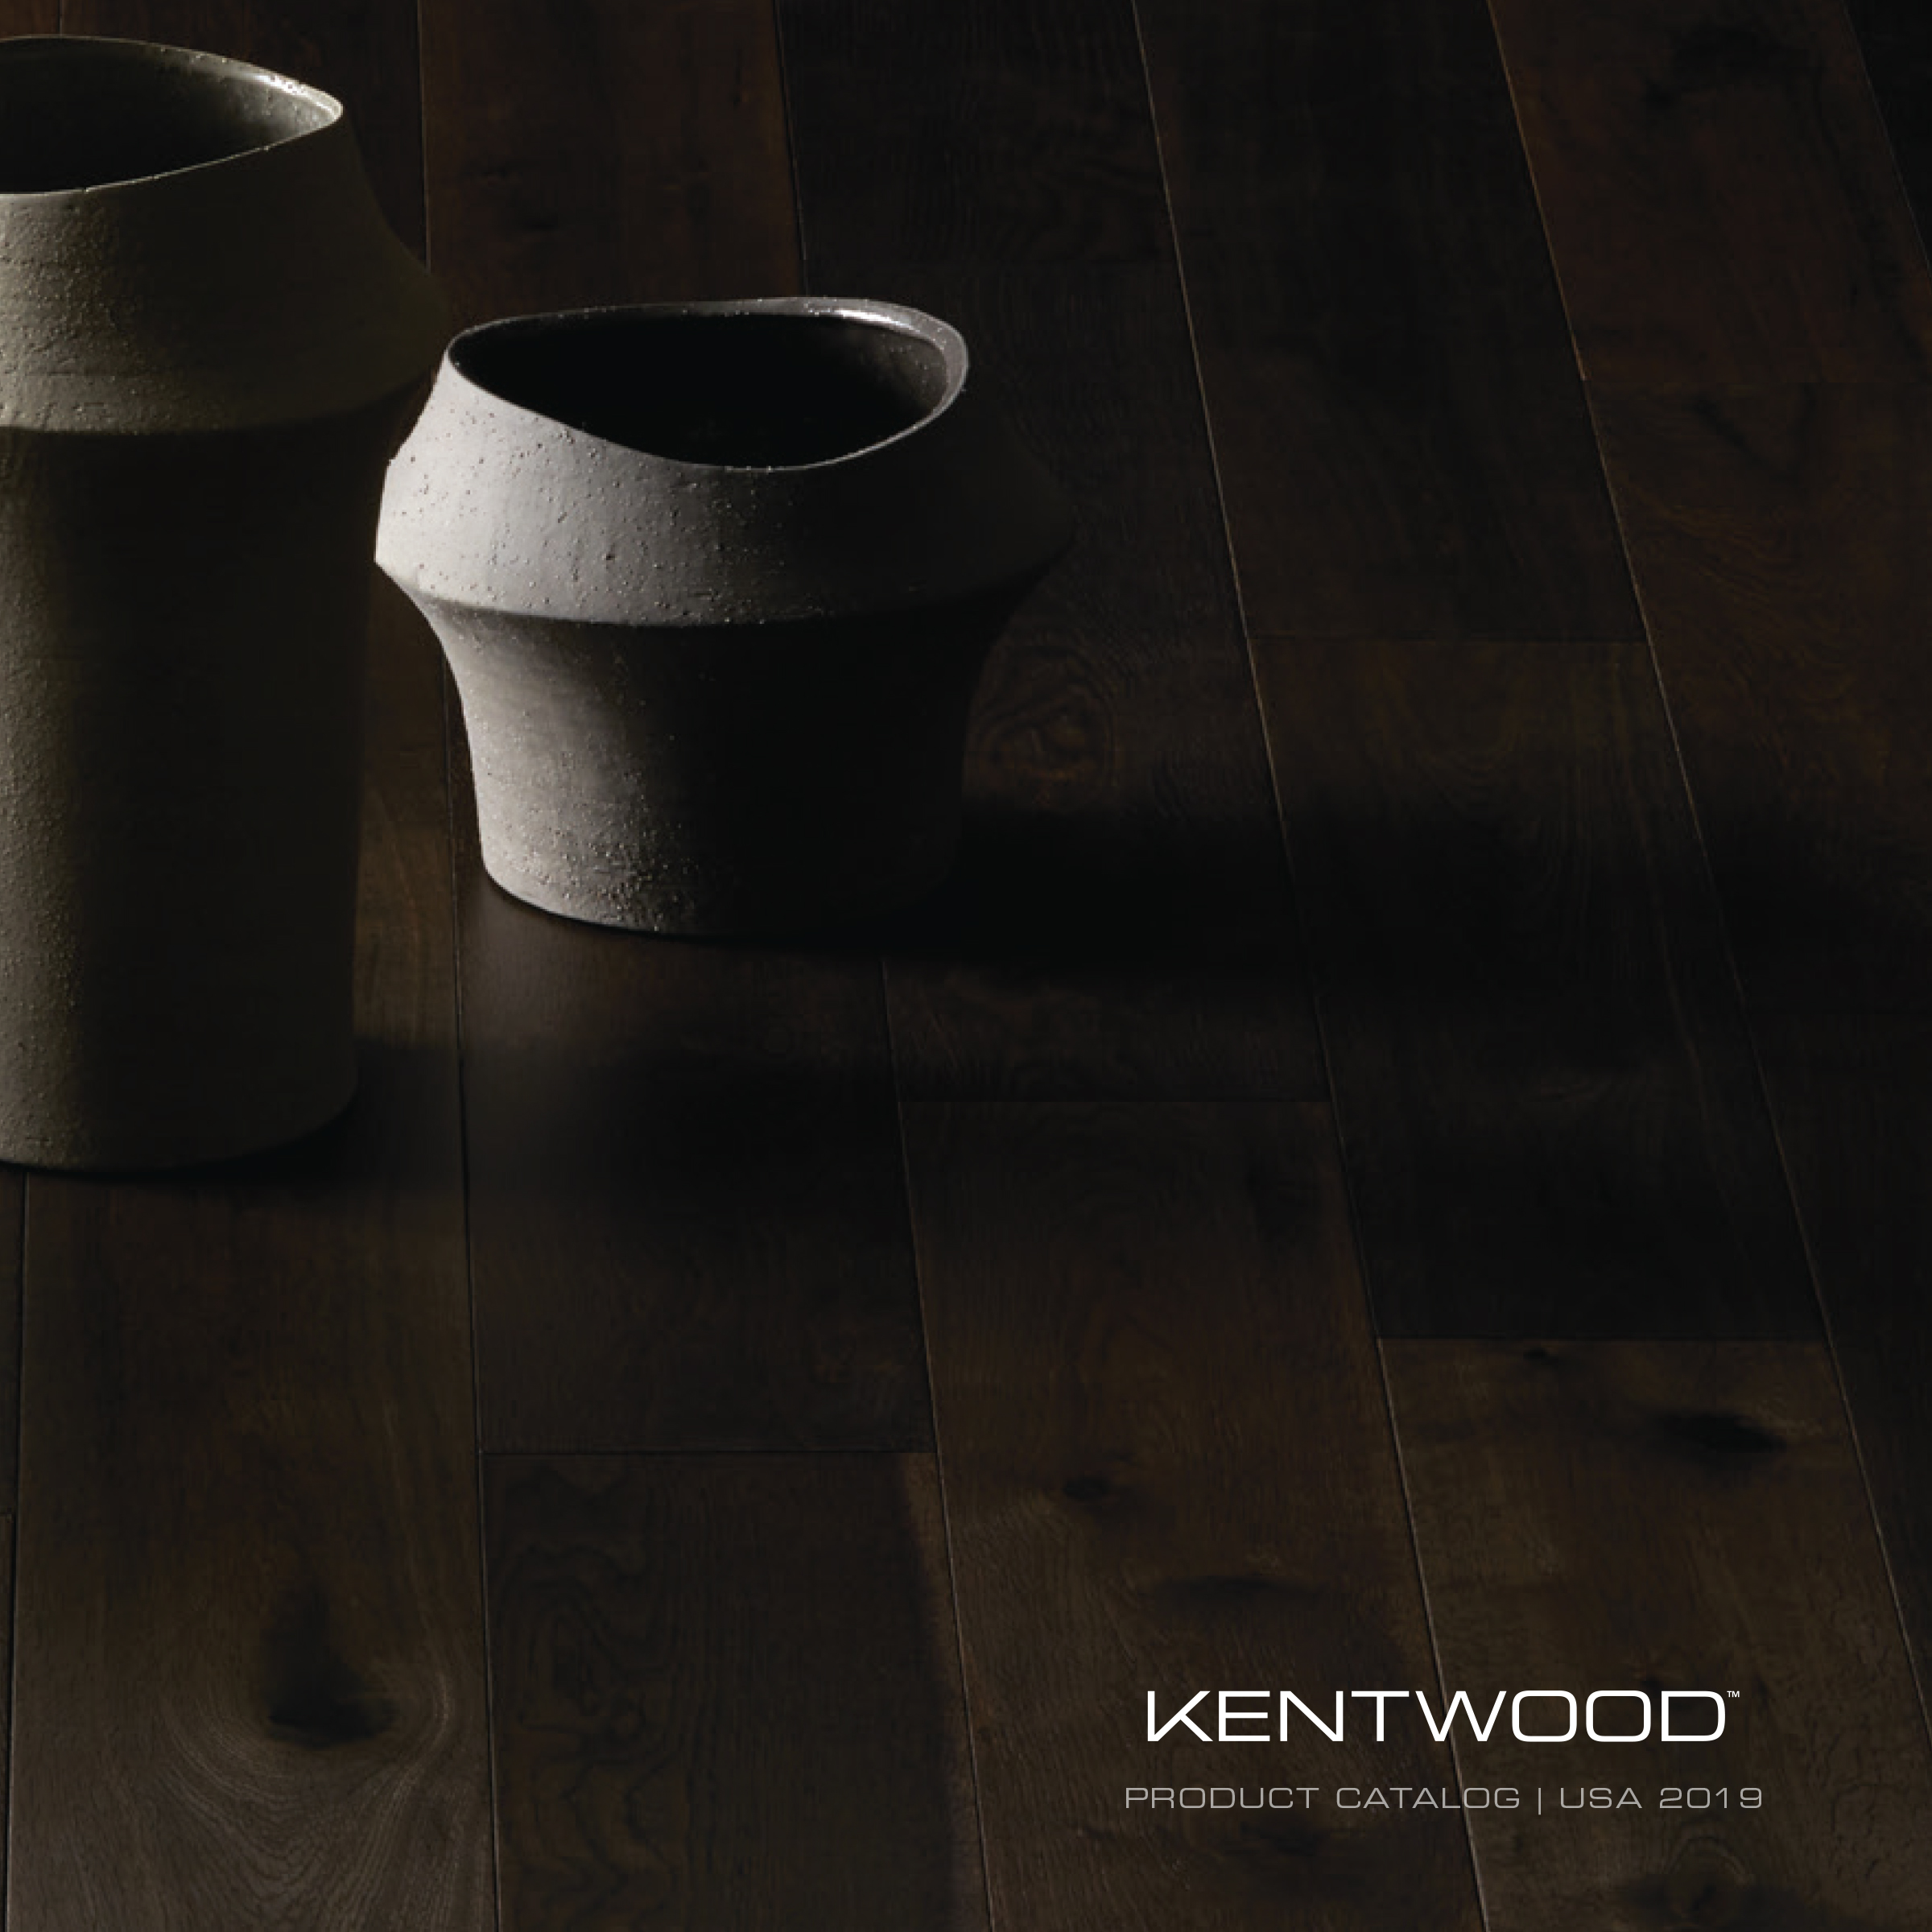 2019 Kentwood Catalog with click through to downloadable PDF